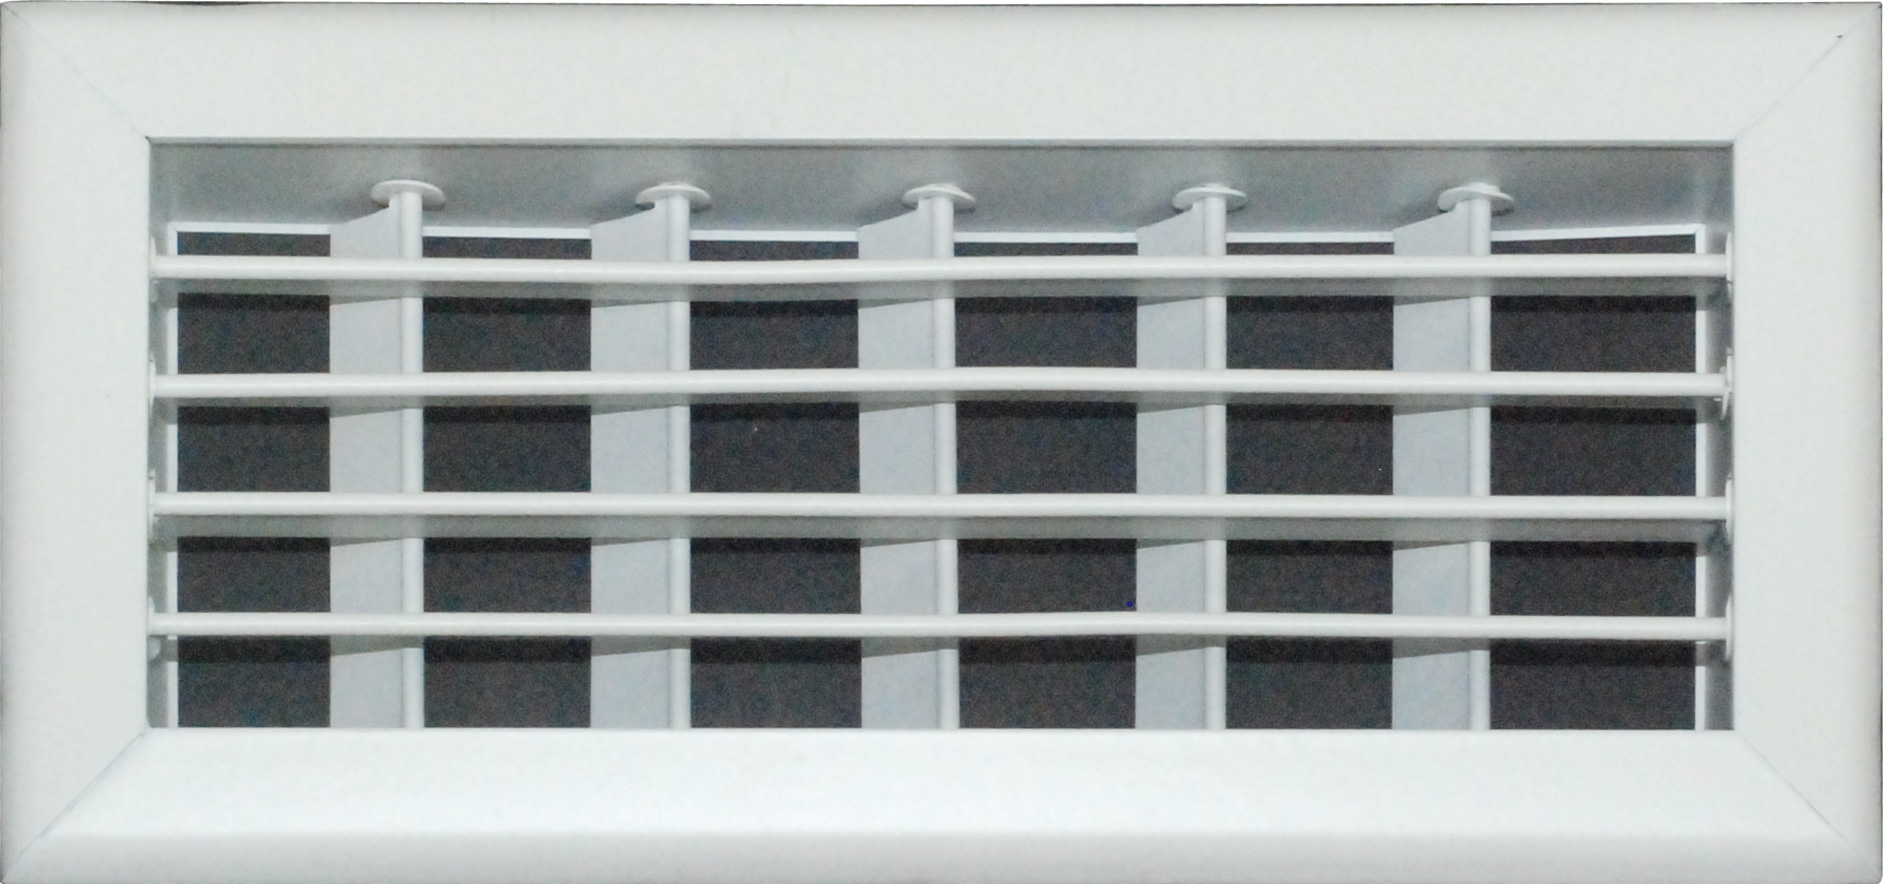 Supply Air Grille